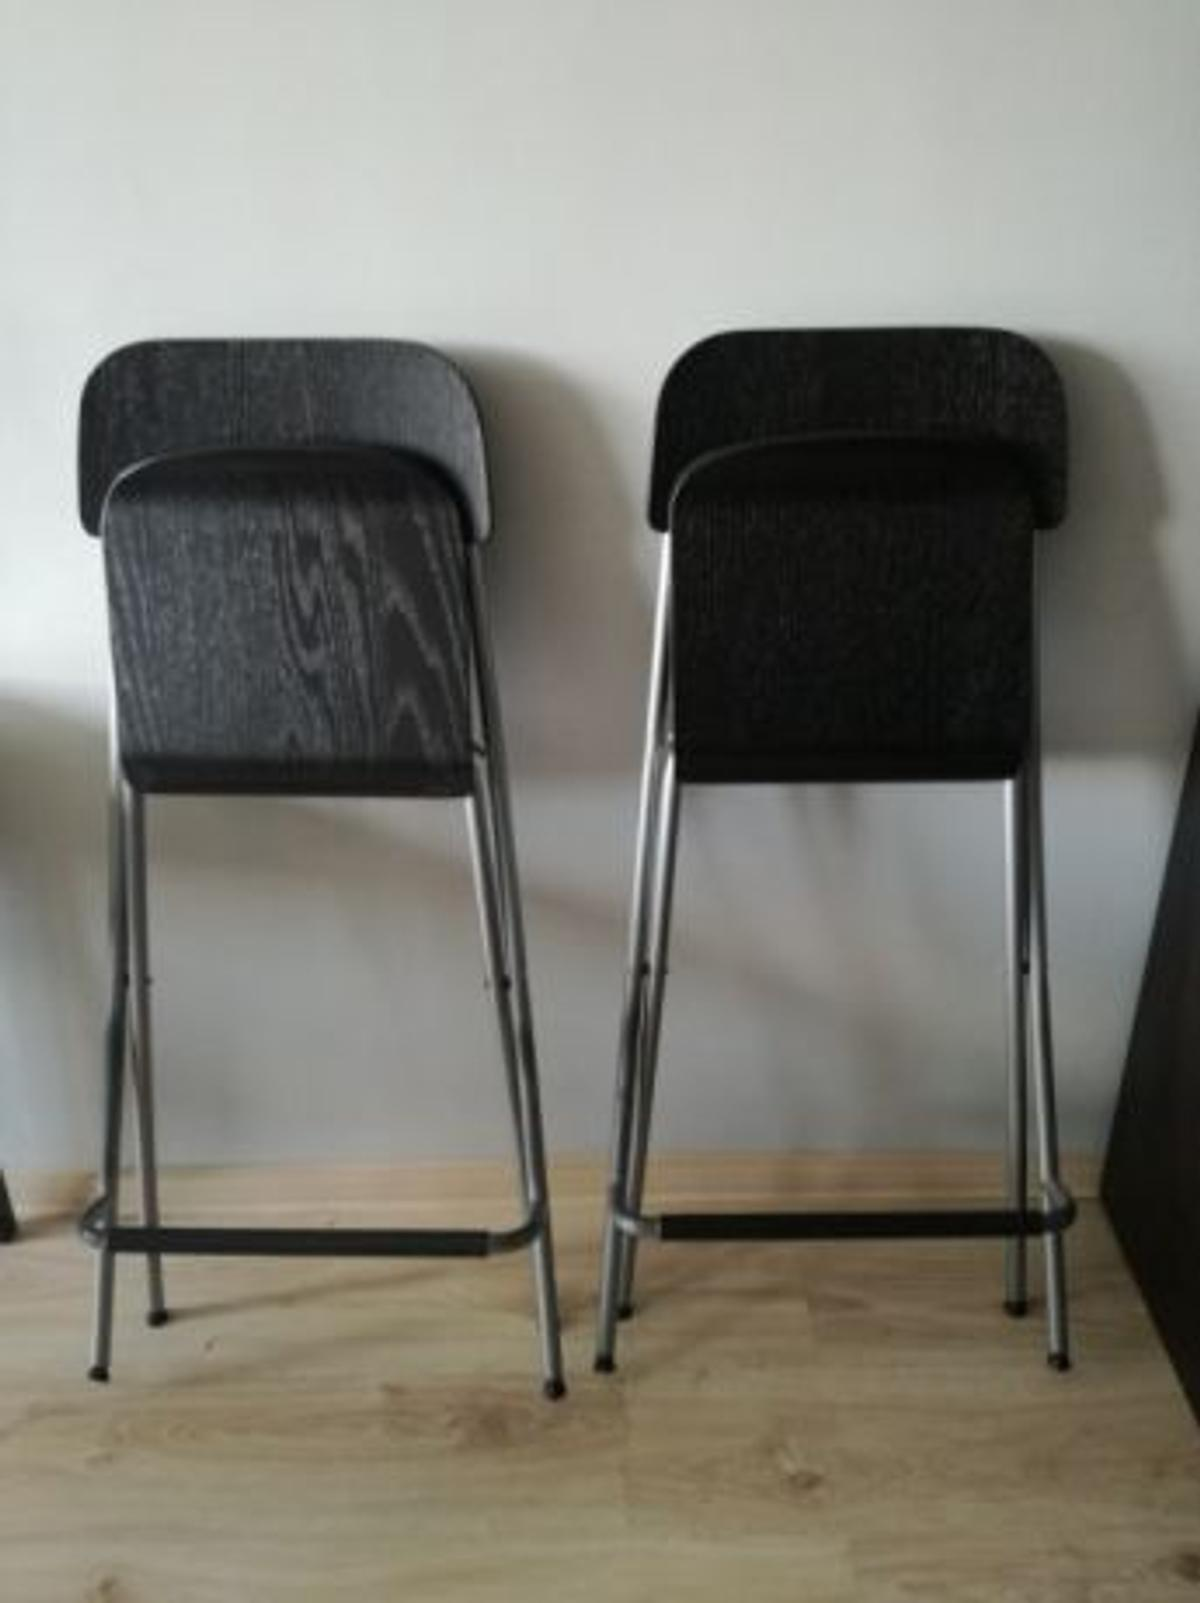 2 X Ikea Franklin Foldable Bar Stools In B18 Birmingham For 27 00 For Sale Shpock